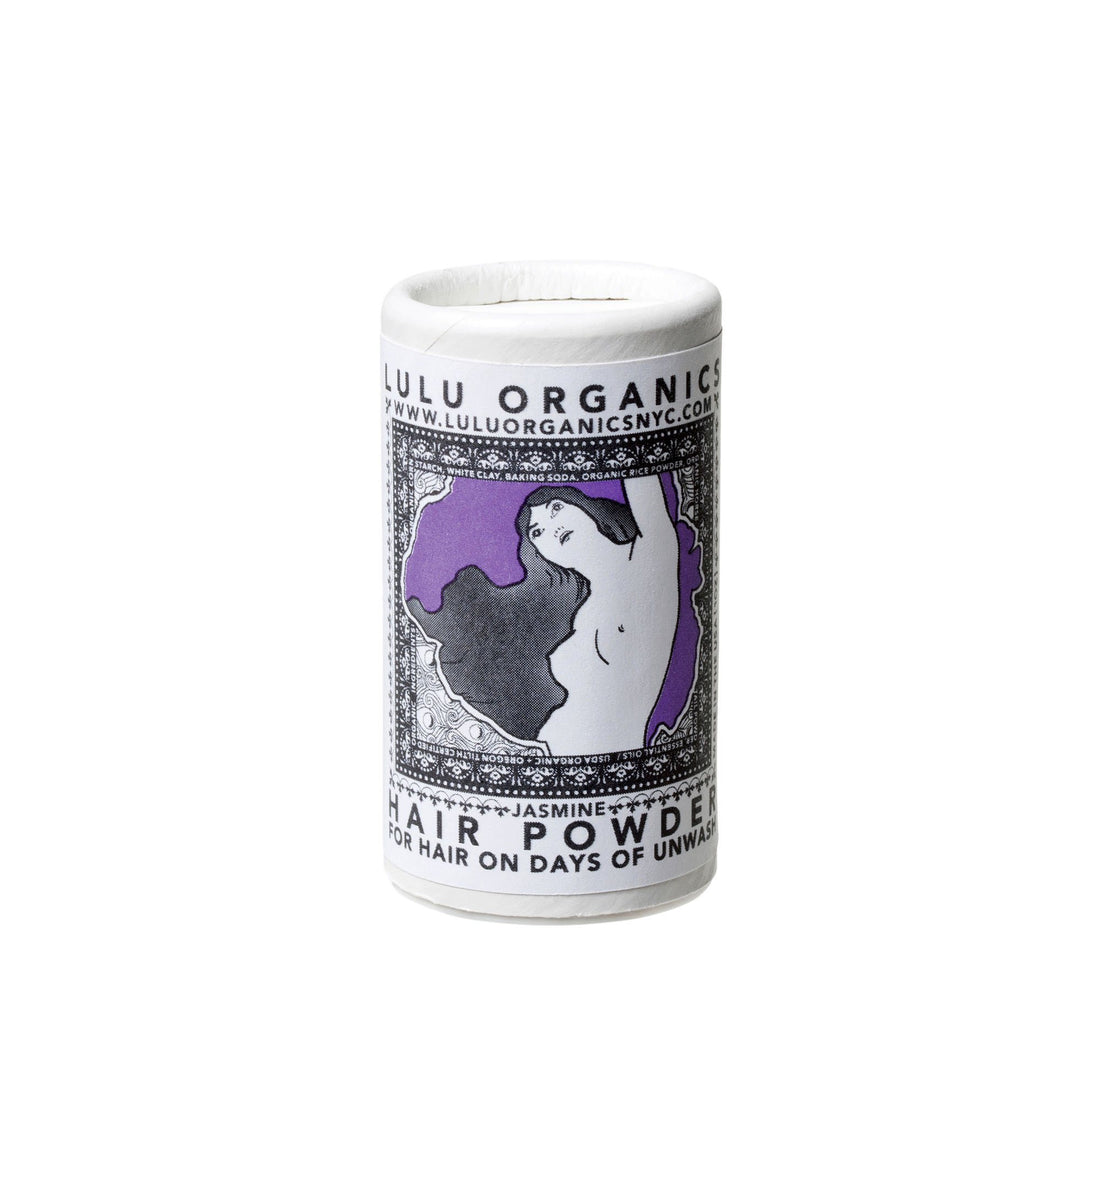 Lulu Organics Travel Size Hair Powder - Jasmine - 1oz - Grooming - Iron and Resin